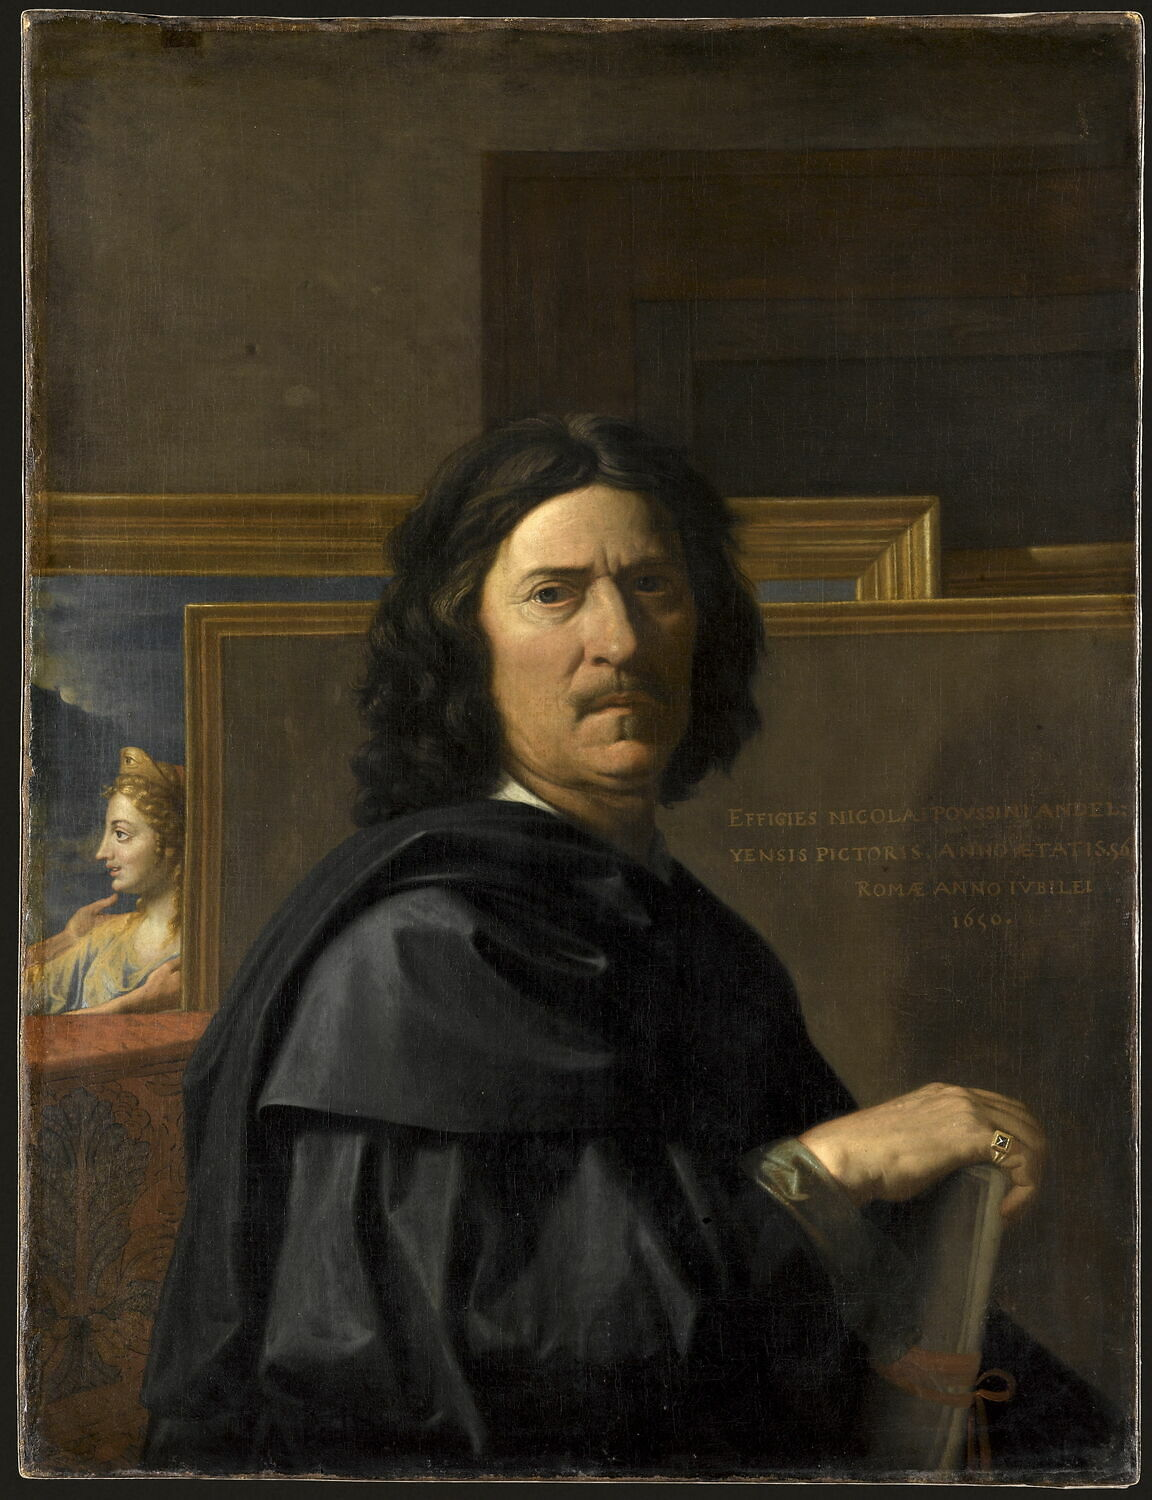 https://i2.wp.com/upload.wikimedia.org/wikipedia/commons/d/d9/Nicolas_Poussin_078.jpg